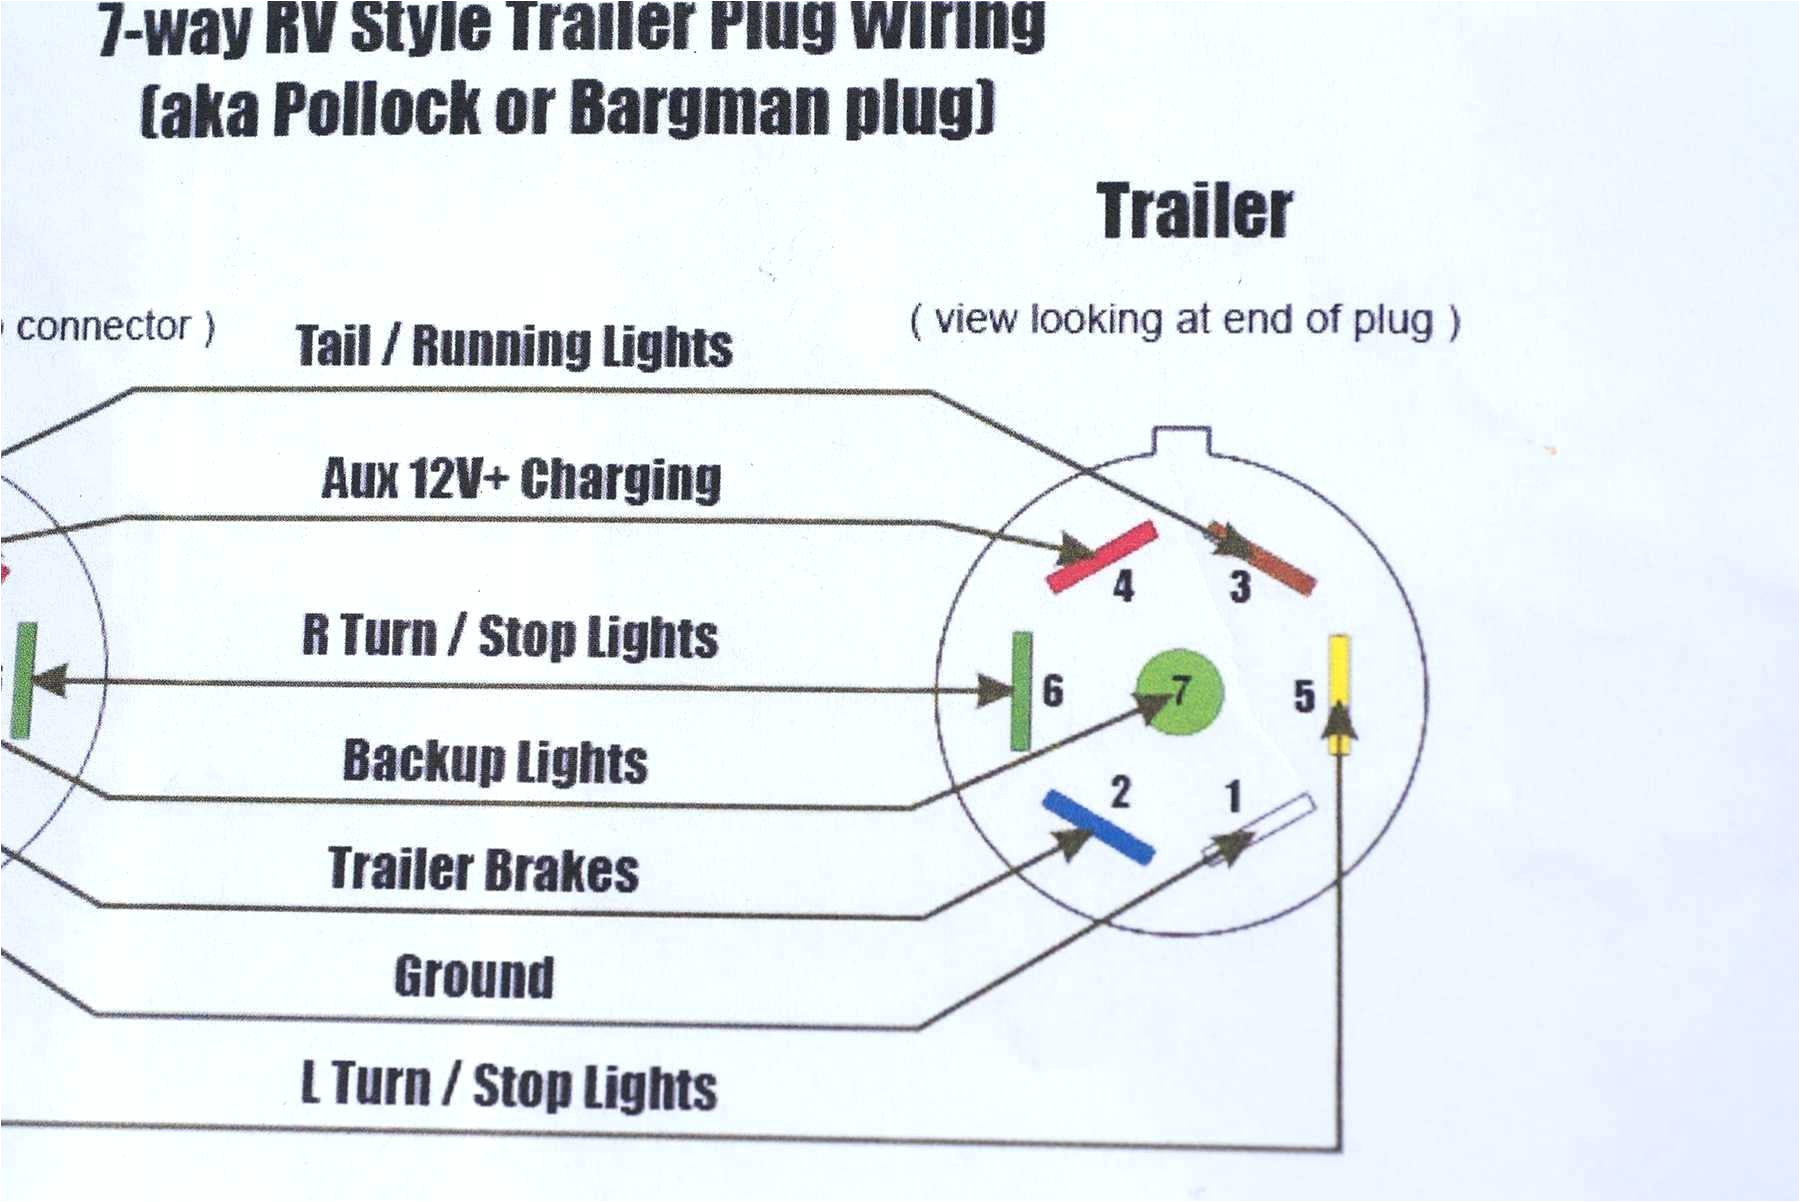 Ford Expedition Trailer Wiring Diagram - Wiring Diagrams justify forge-silk  - forge-silk.olimpiafirenze.itforge-silk.olimpiafirenze.it